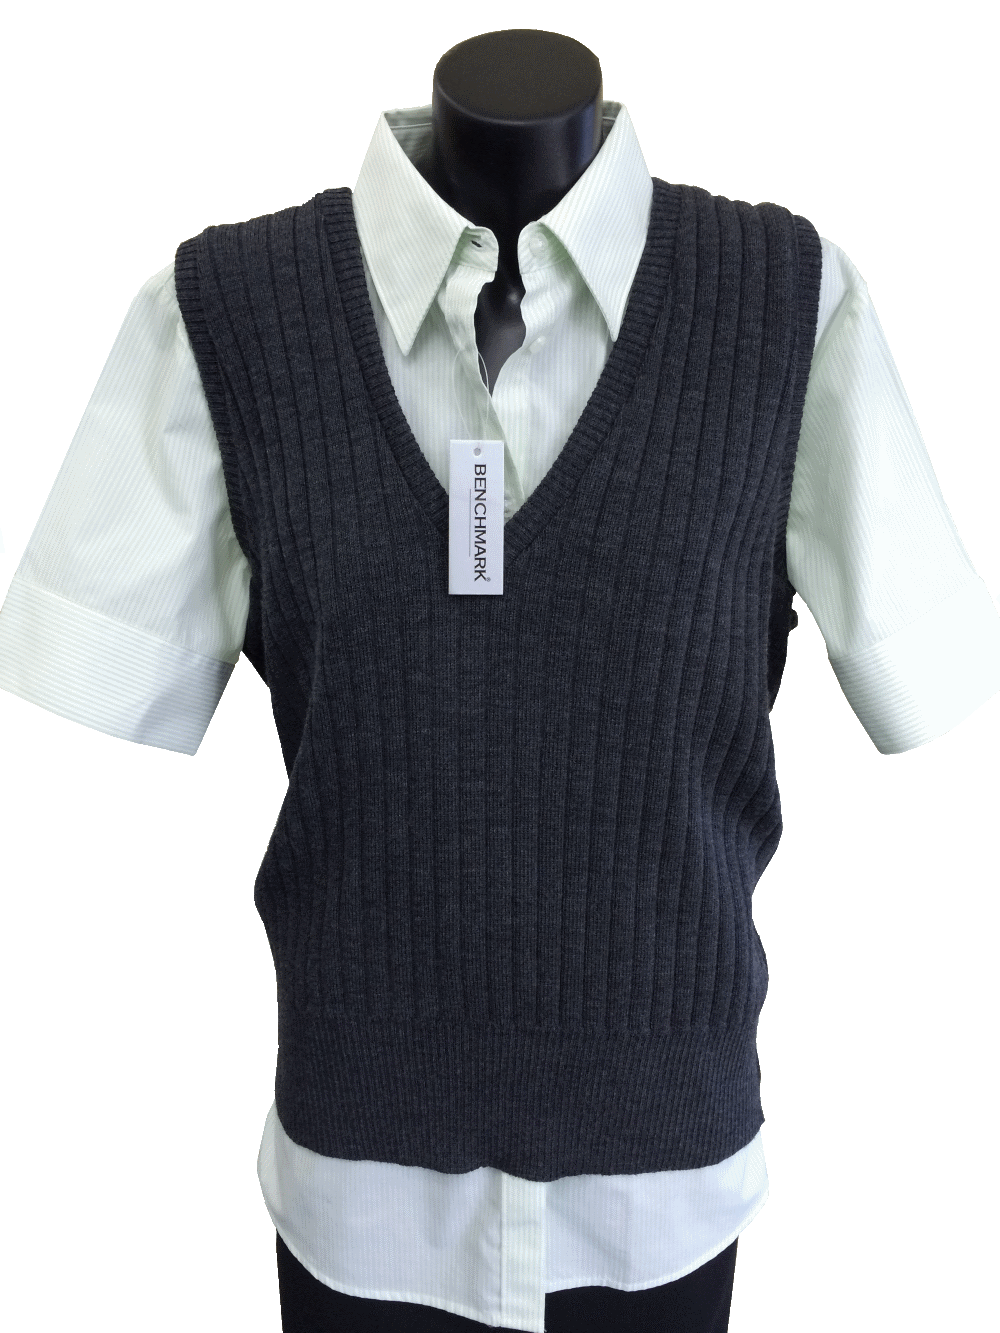 Ladies extra-lightweight ribbed vest.